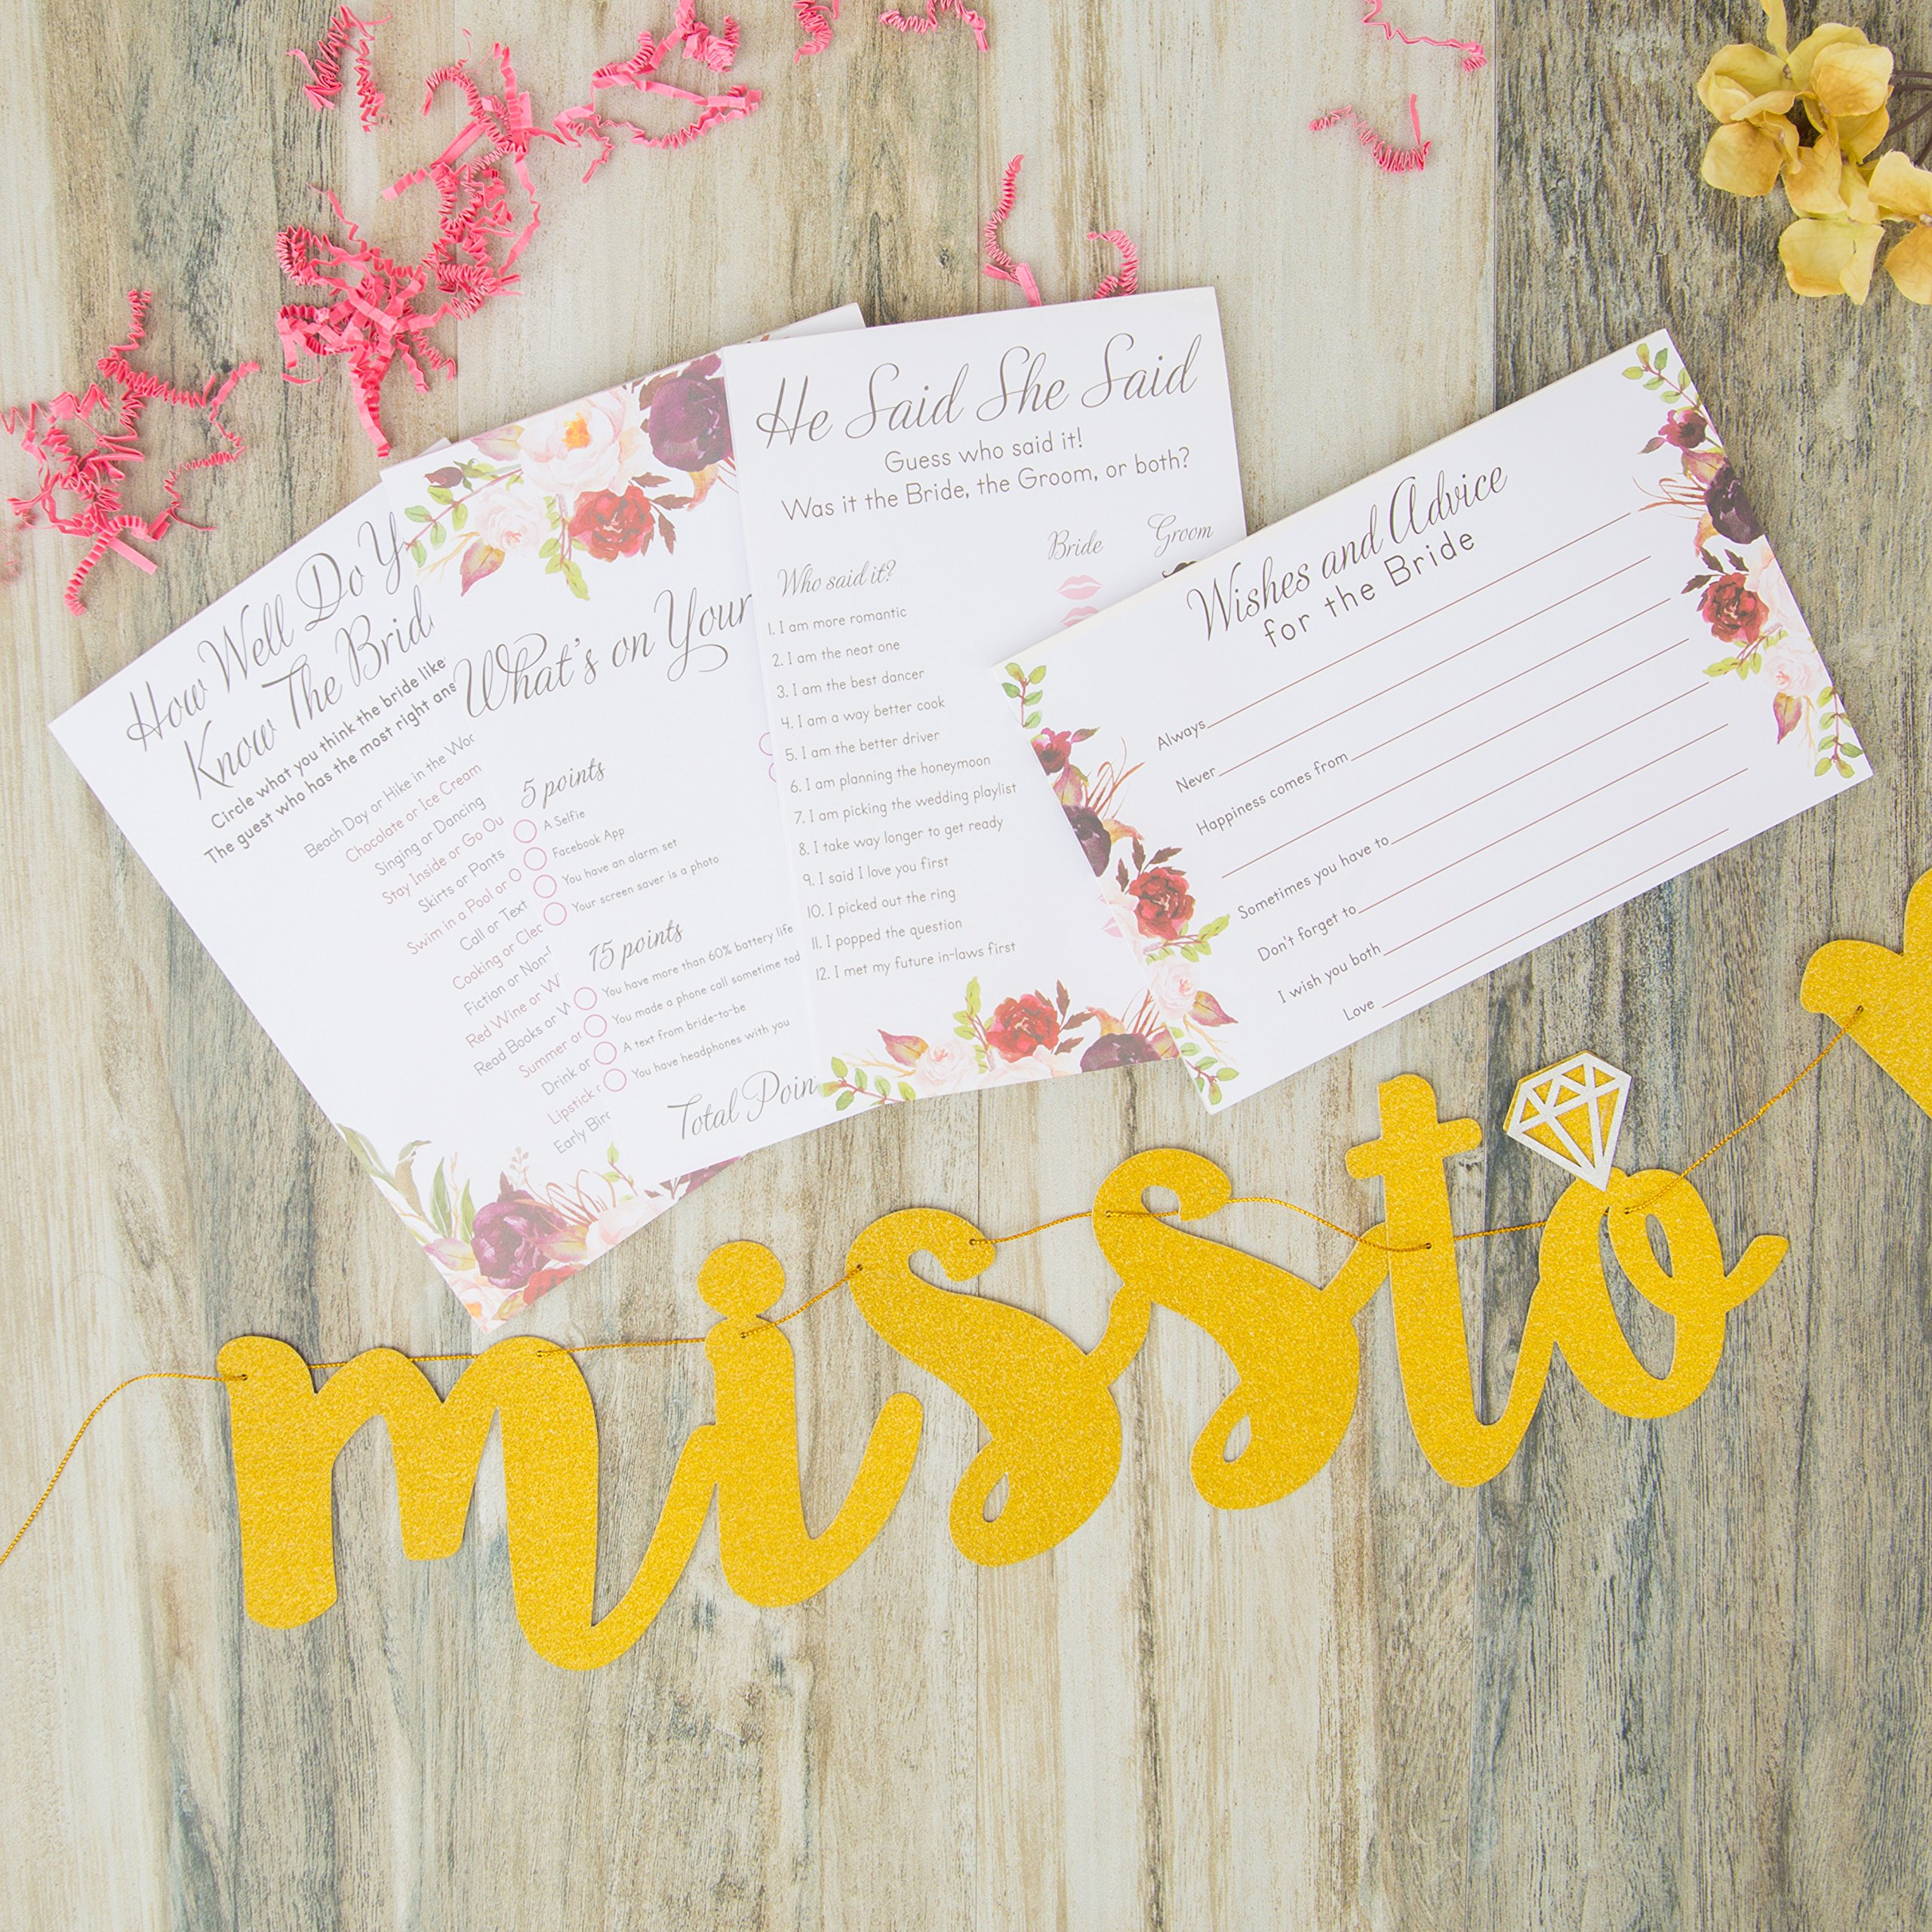 Bridal Shower Games pack with Bonus Miss to Mrs Banner (GOLD), Dots and Wedding Advice Cards | 3 Games - What's On Your Phone, He Said She Said, How Well Do You Know The Bride(50 Sheets each) by Planet Mango (Image #3)